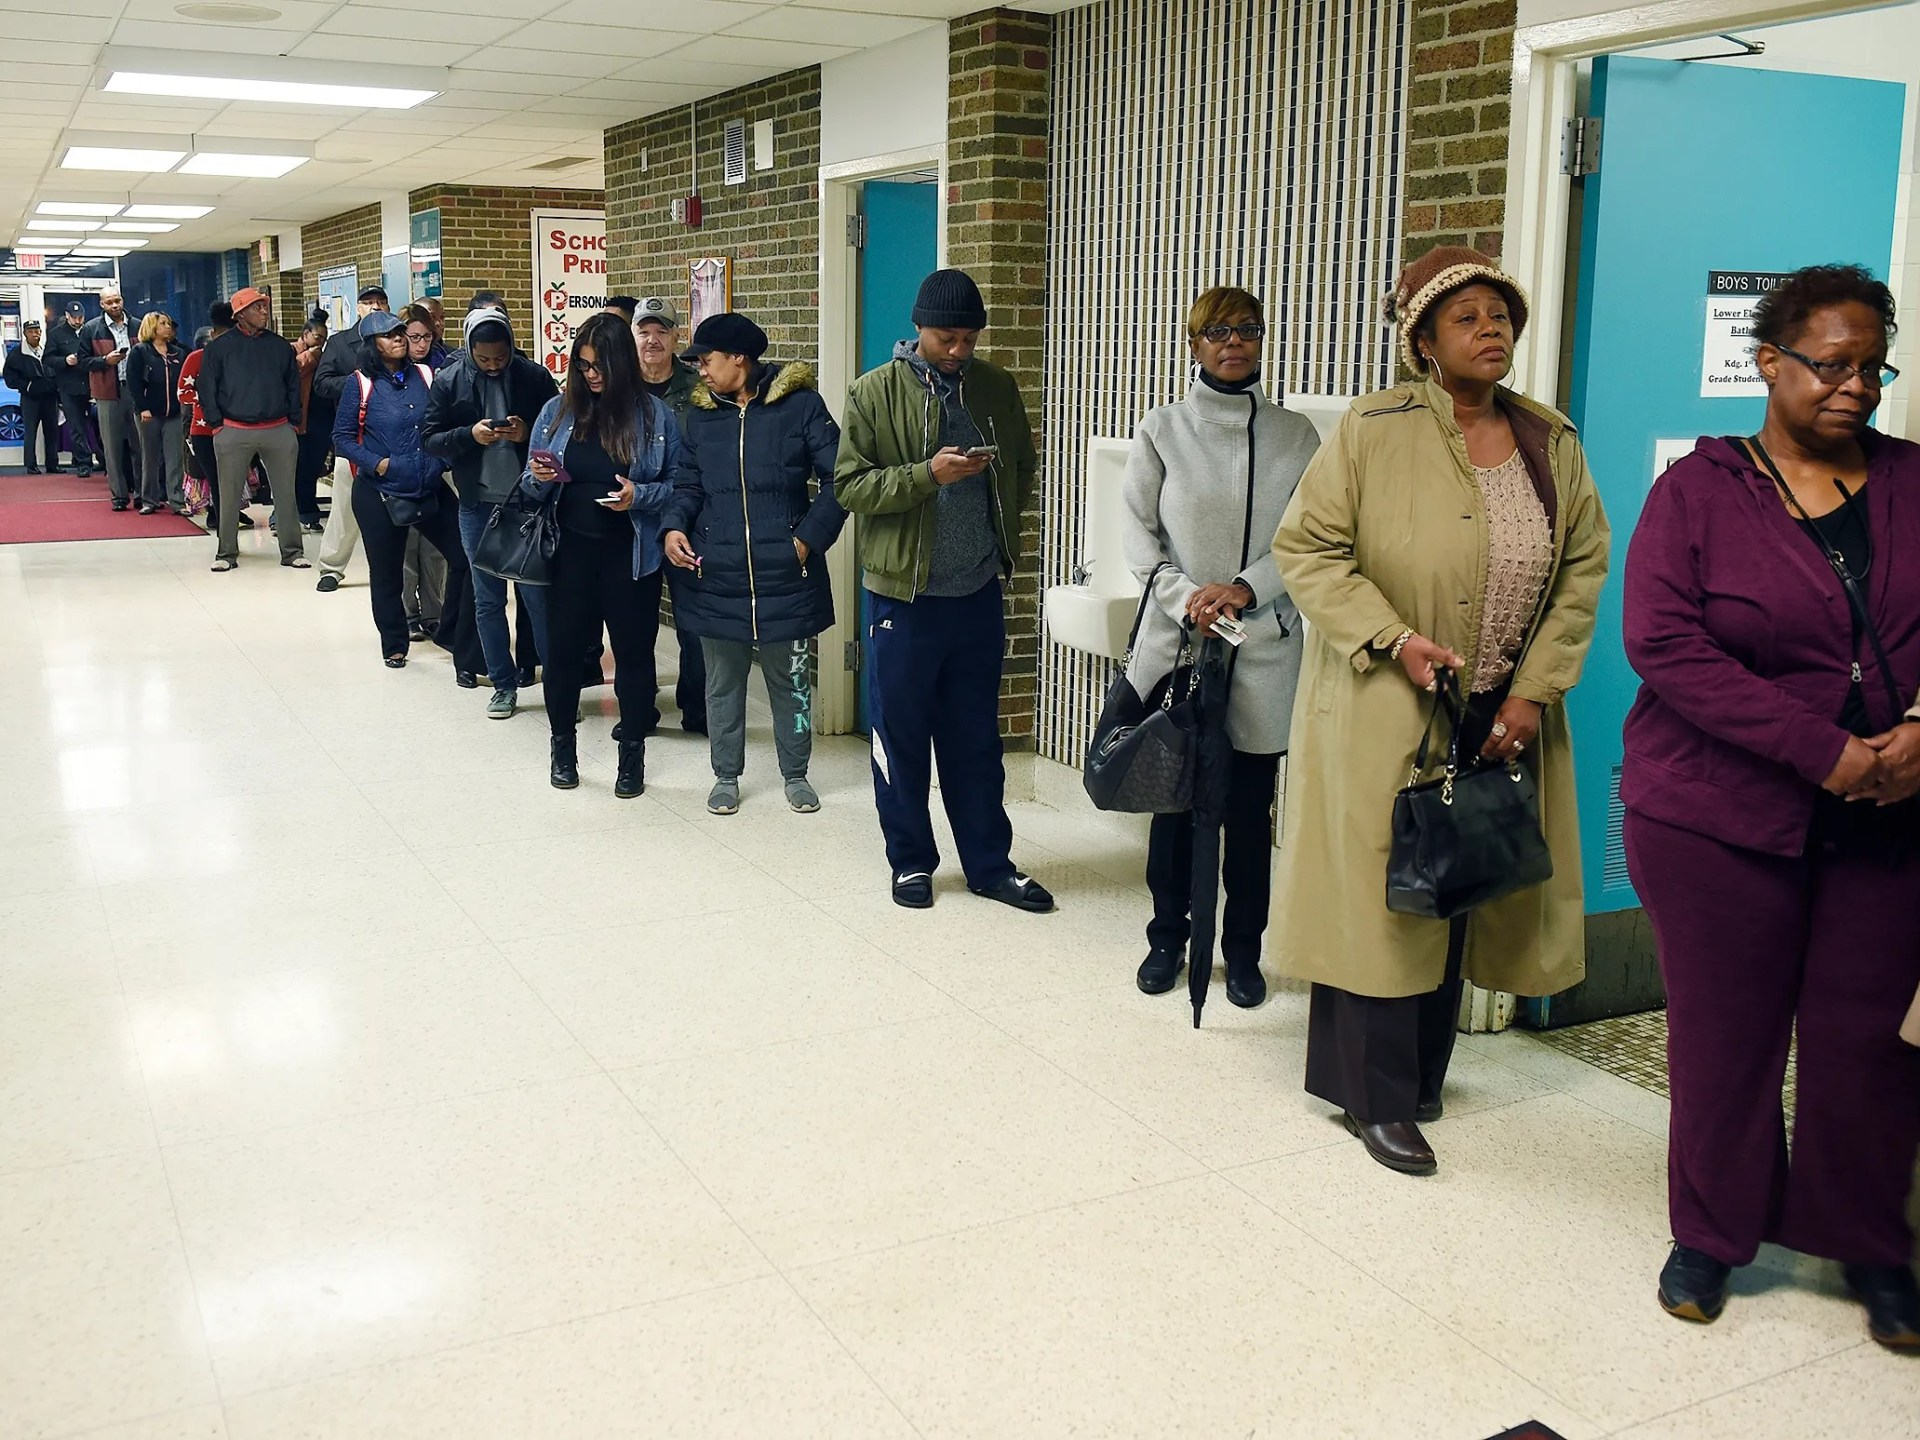 A long line of voters wait to vote Tuesday morning at Adler Elementary School in Southfield.